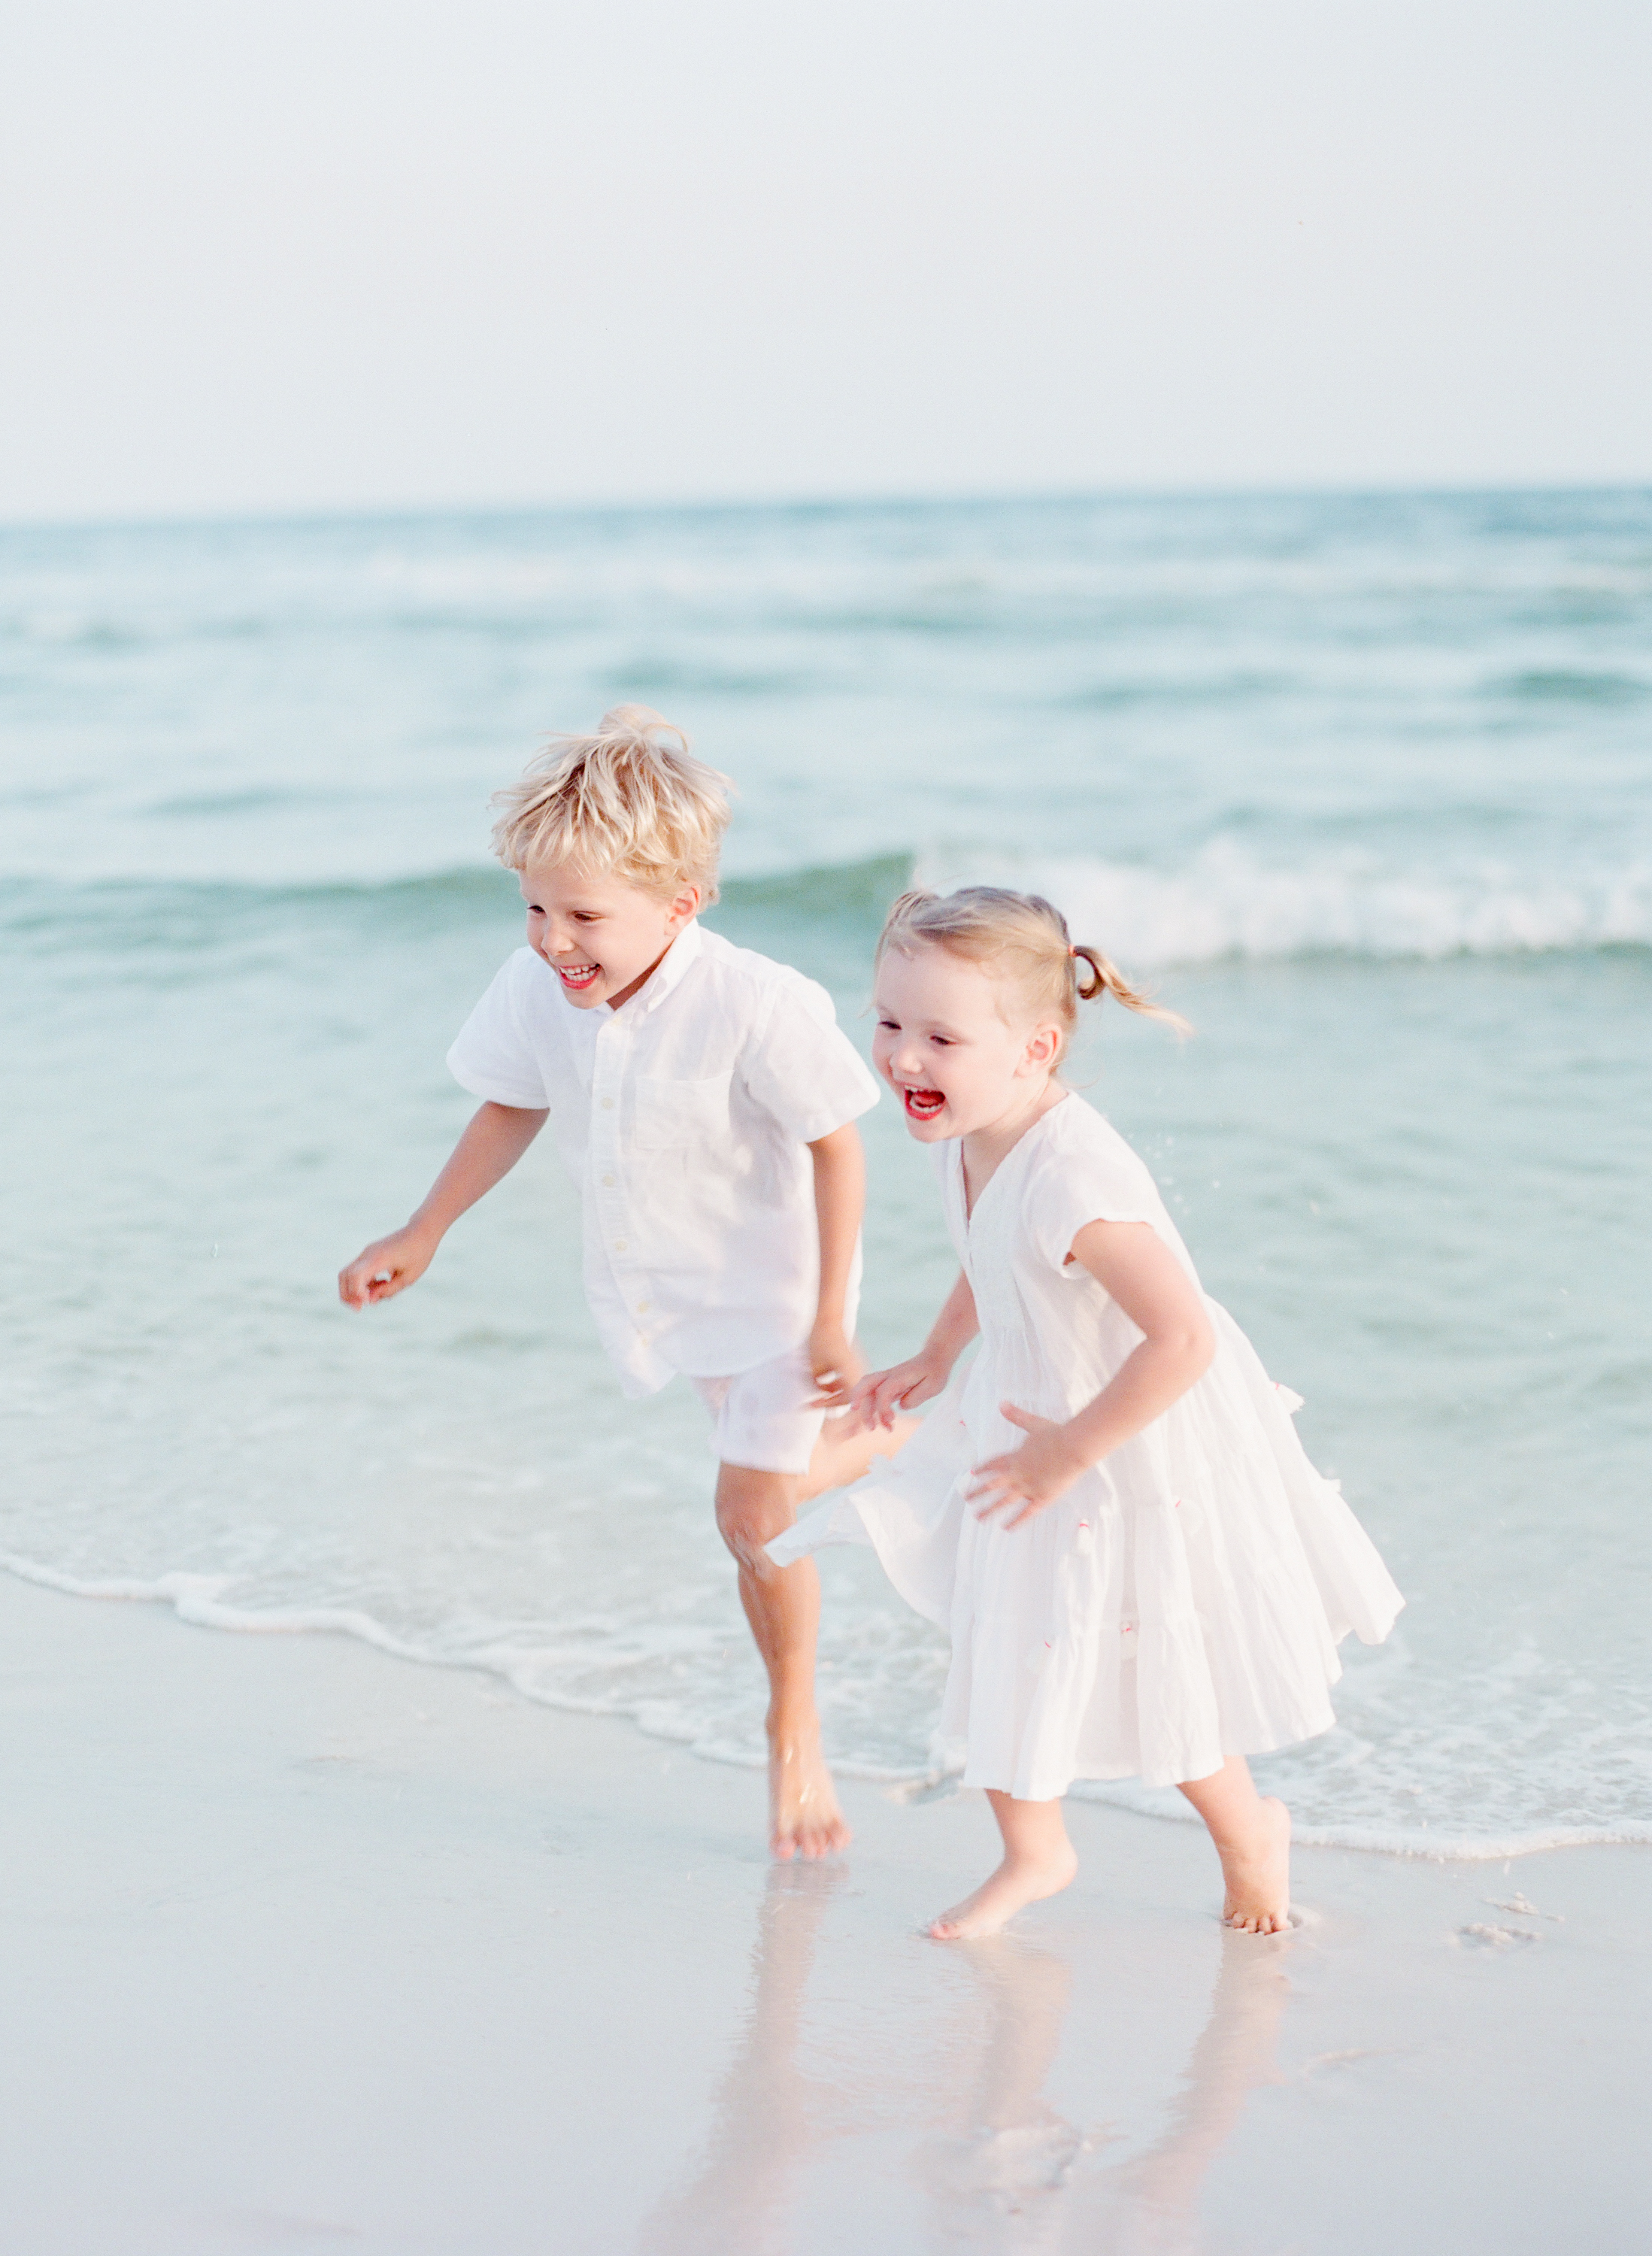 Kids playing at the beach | Kaylie B. Poplin Photography | Watercolor, Florida portrait and wedding photographer